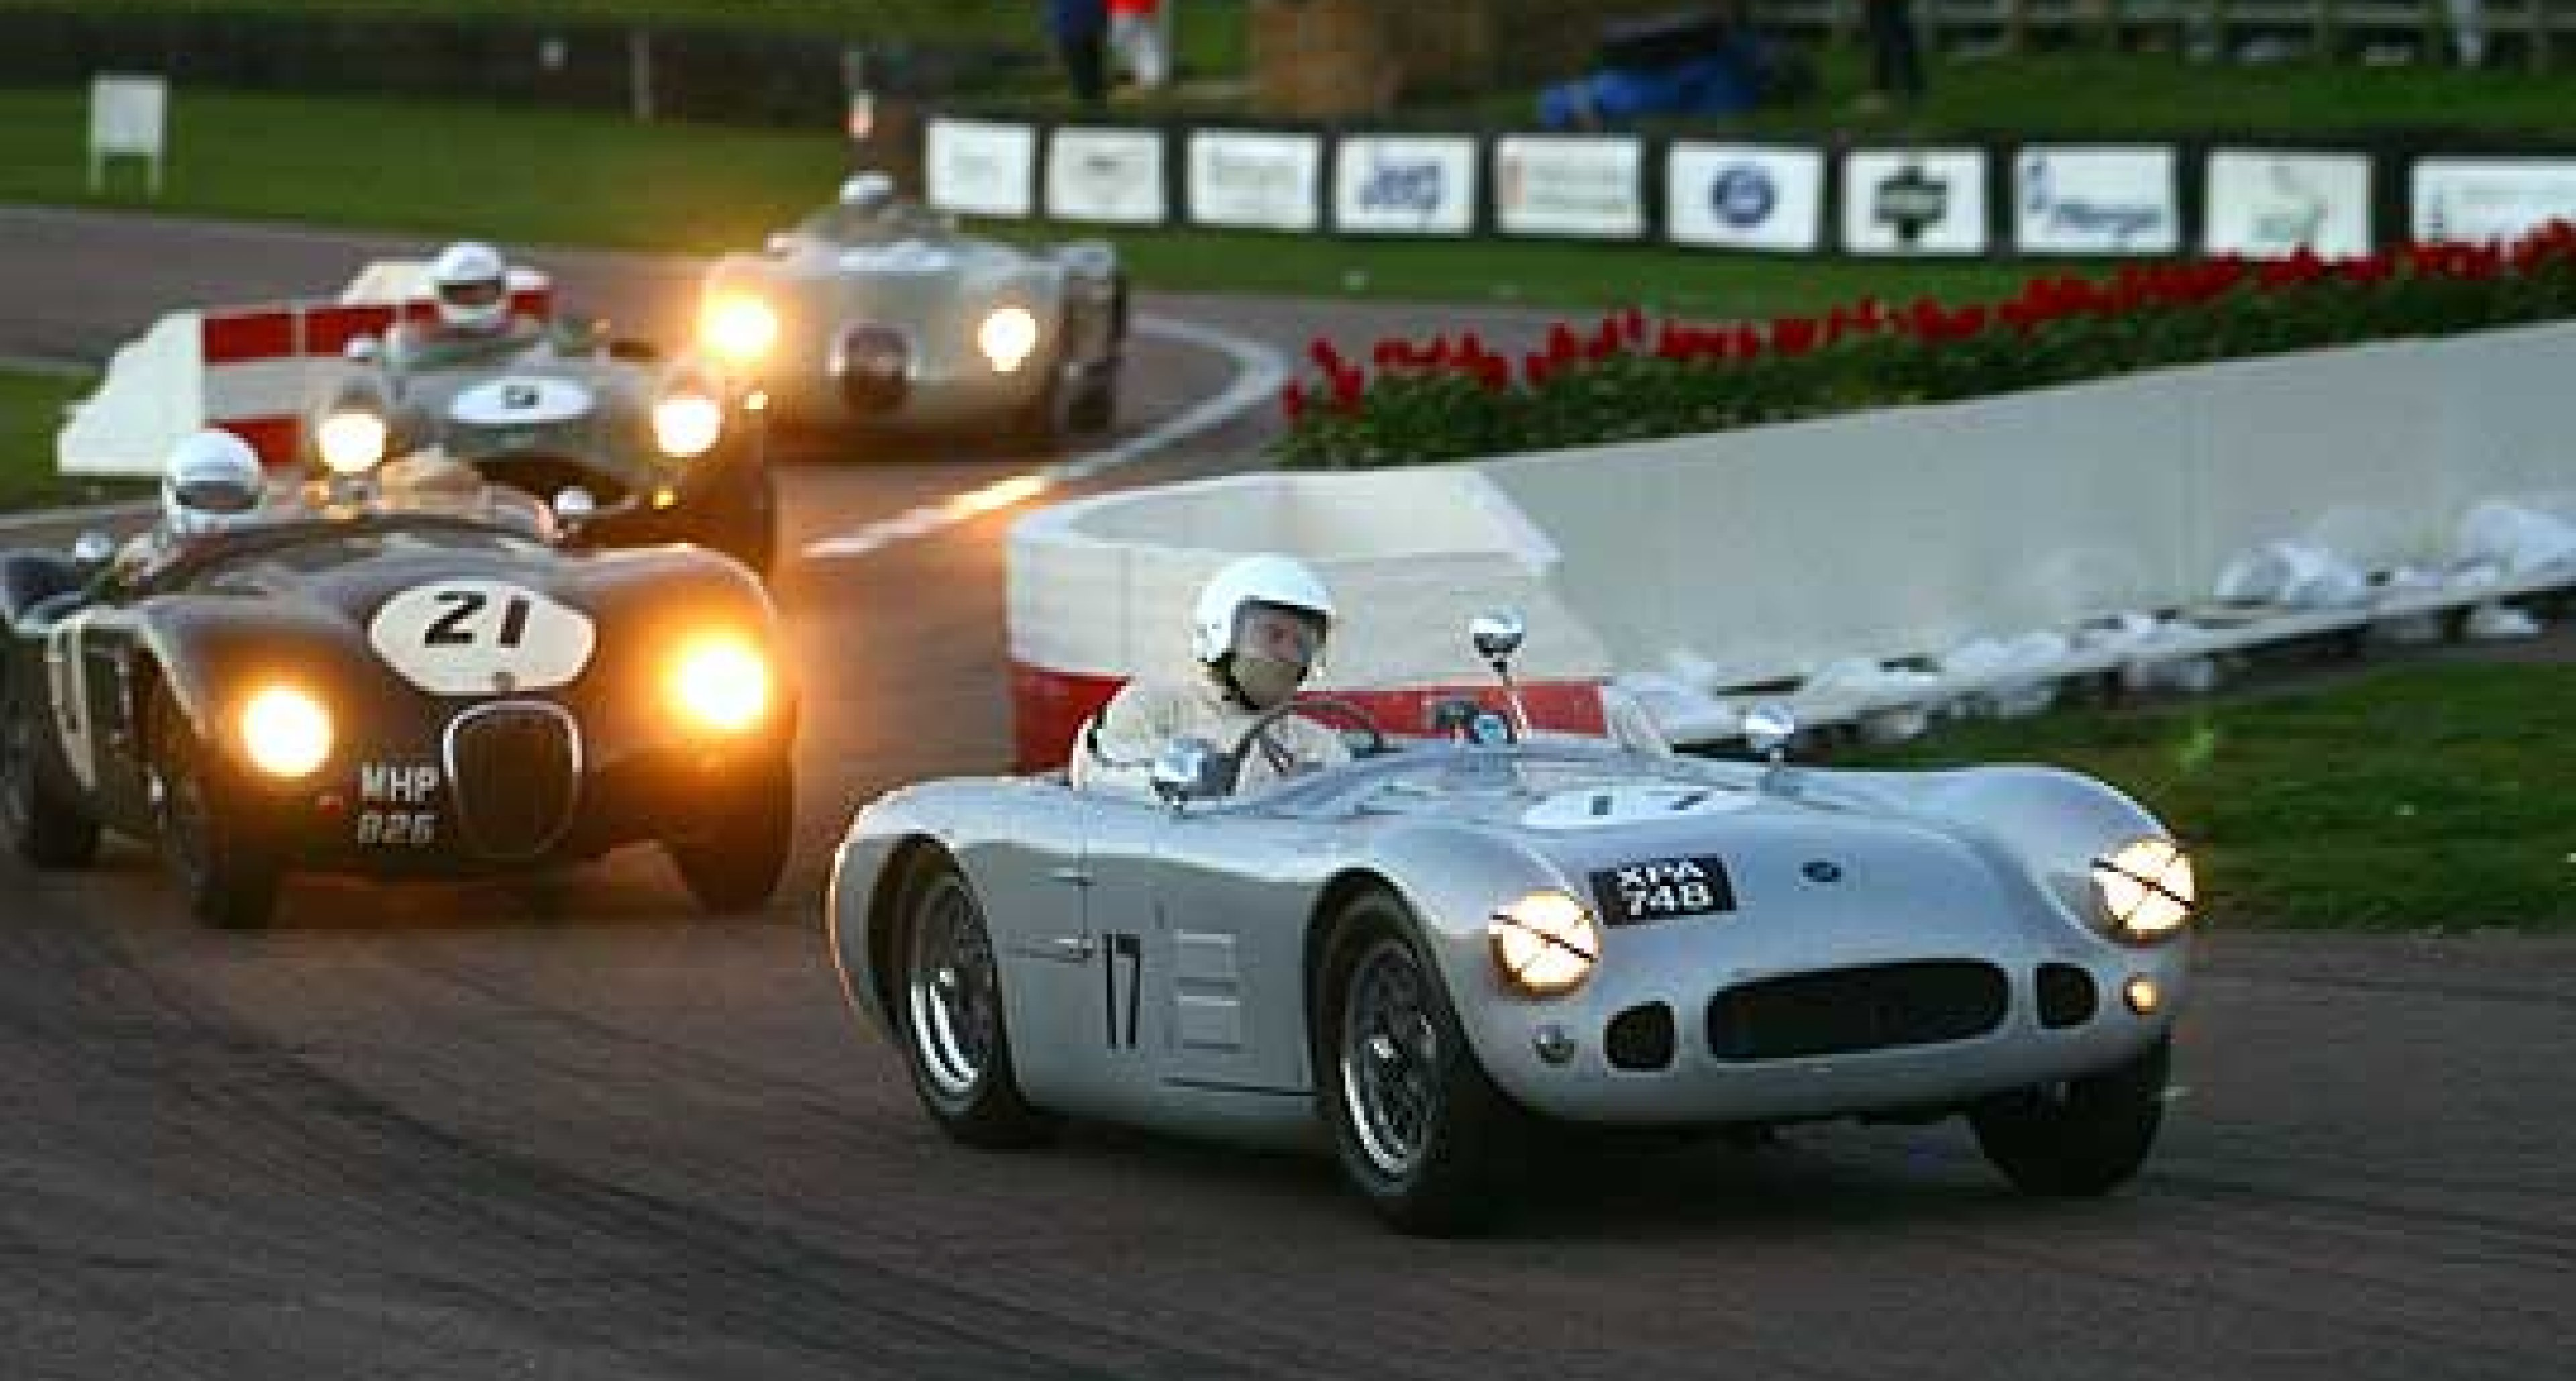 Goodwood Revival 2008 - Preview